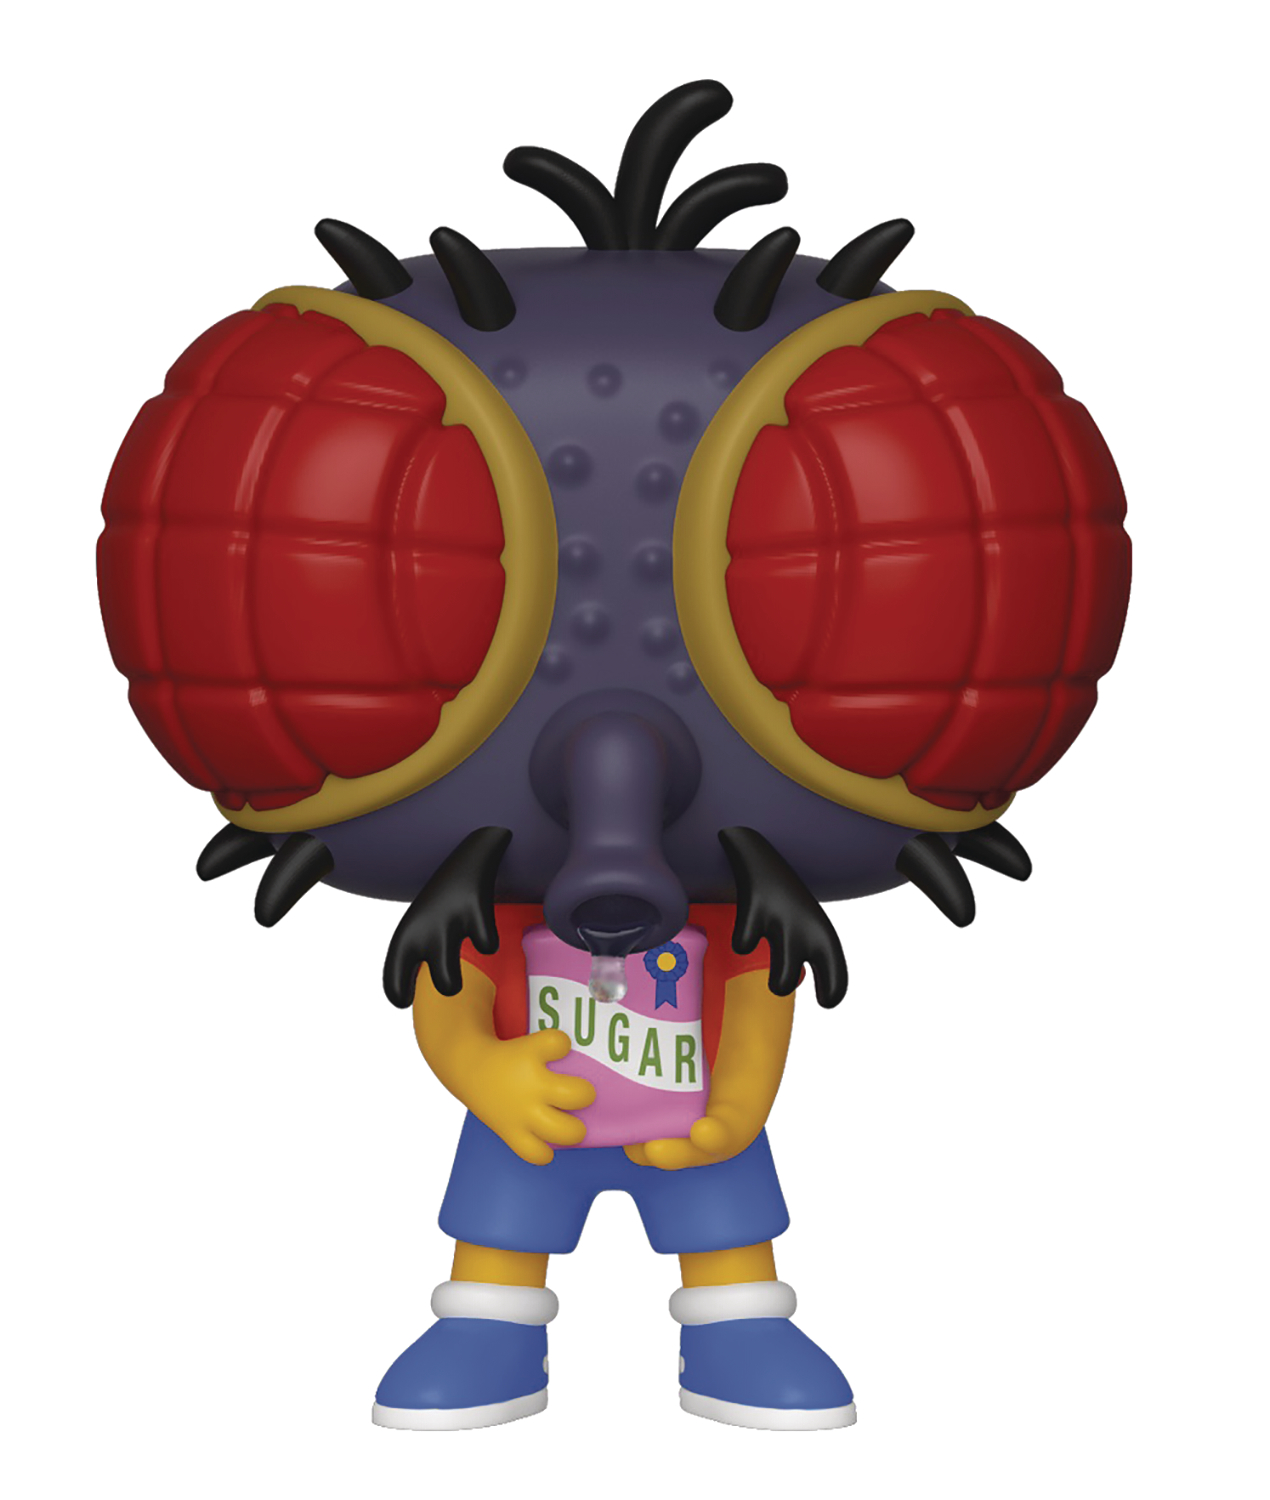 POP ANIMATION SIMPSONS BART FLY VIN FIG